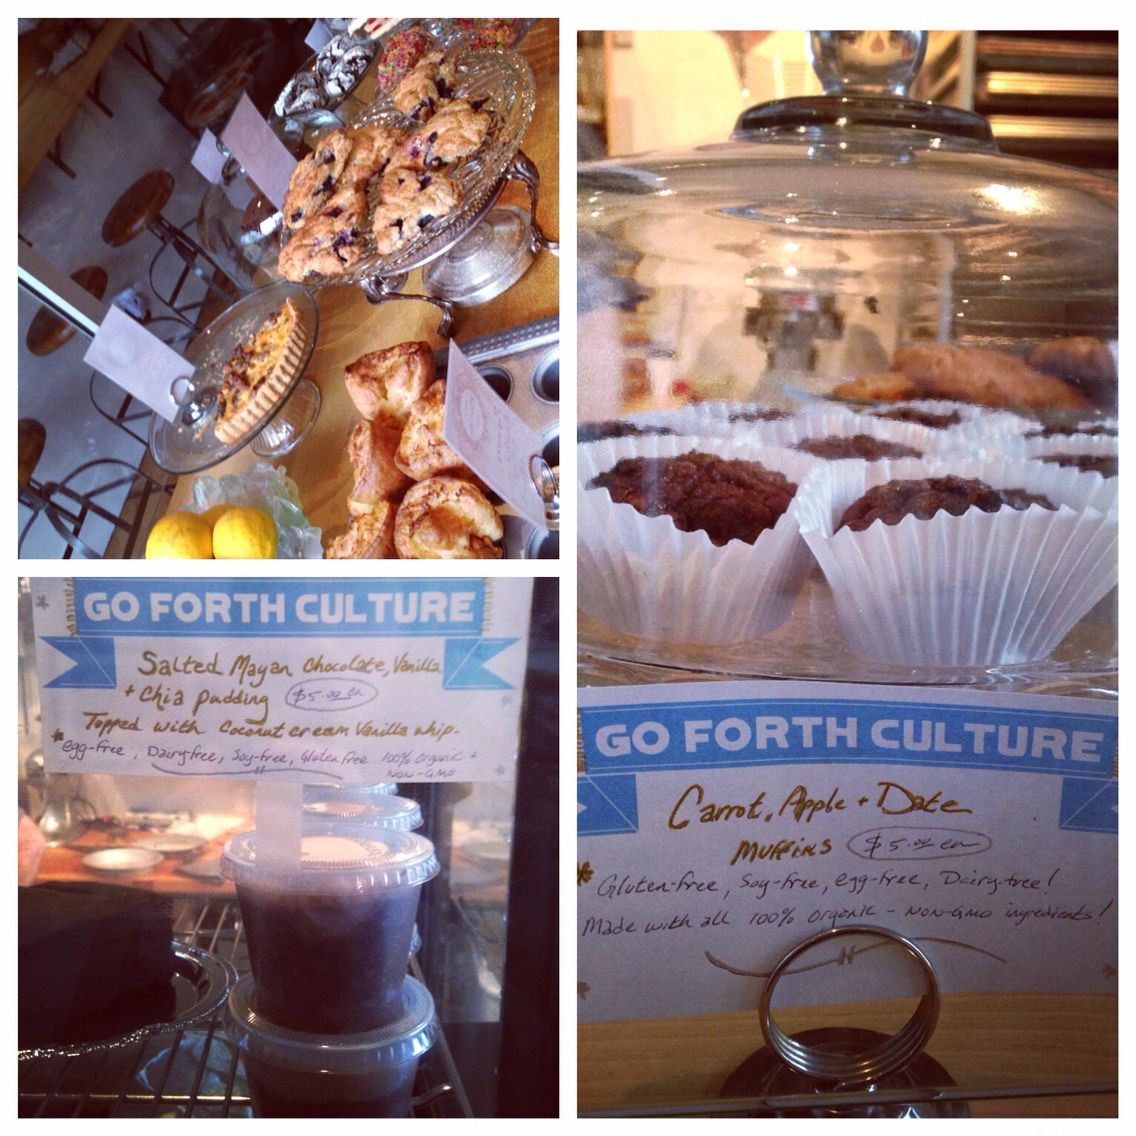 Go Forth Culture foods now available at Ville Velo Bake Shop in PDX Oregon!!